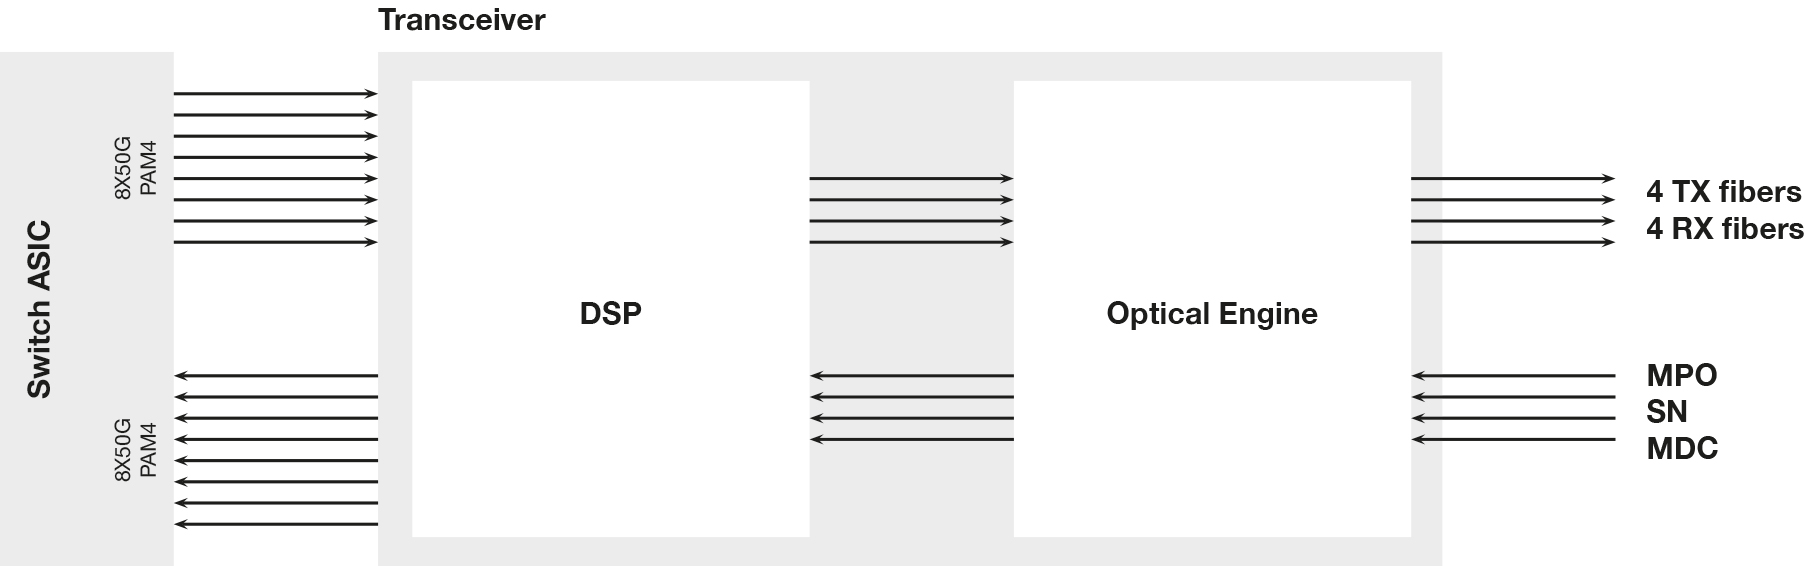 For instance, in the DR4 transceivers the DSP converts the 8x50G PAM4 electrical host signals into 4x 100G electrical lanes towards the optical engine. At the same time the DSP acts as a CDR. In a DR4 the optical engine (EML lasers or Silicon Photonics SIP based) generates and terminates the optical lanes. Each lane operates at 1310 and requires one fiber. In other words, the transceiver interface needs to have 8 fibers.